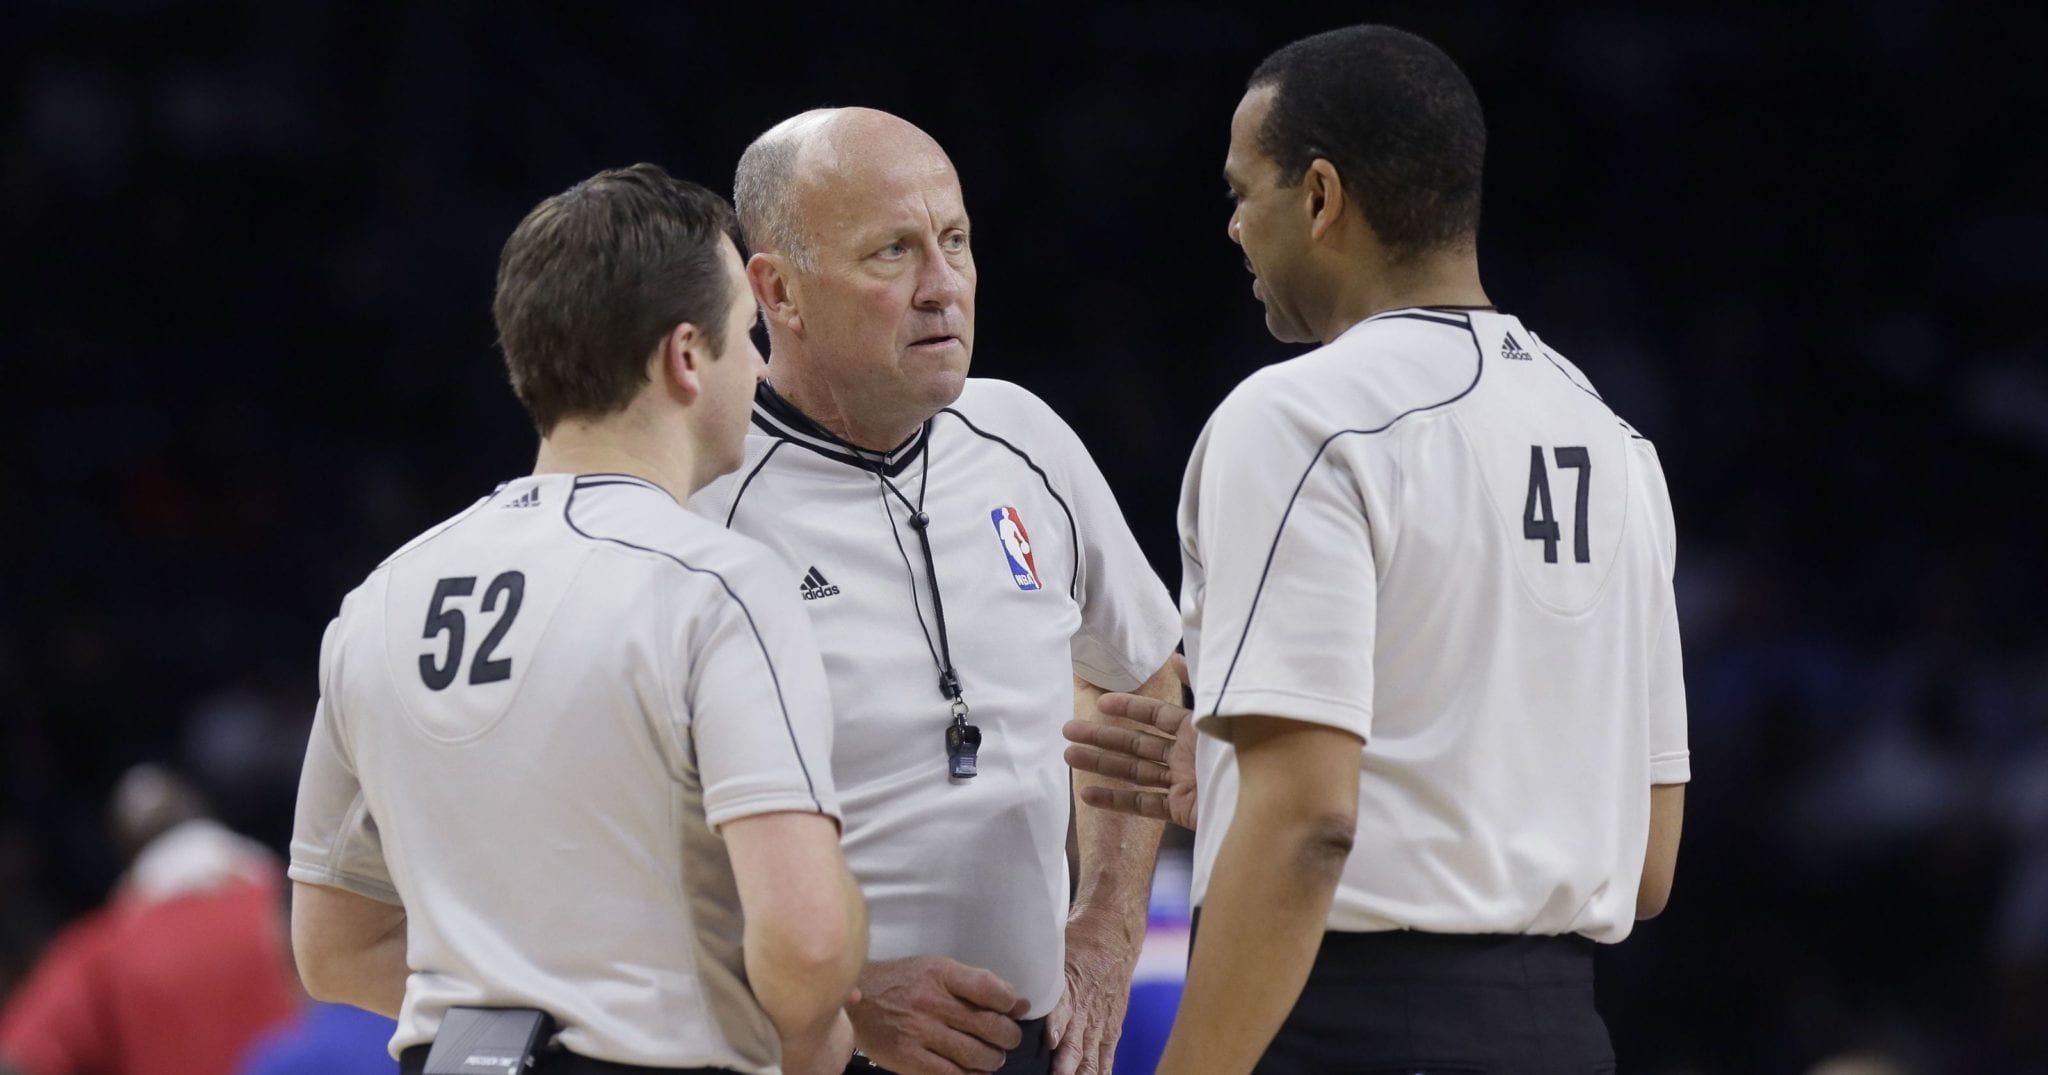 d7f7a3639af The Referees Discuss Their Calls on Twitter — We Are Basket